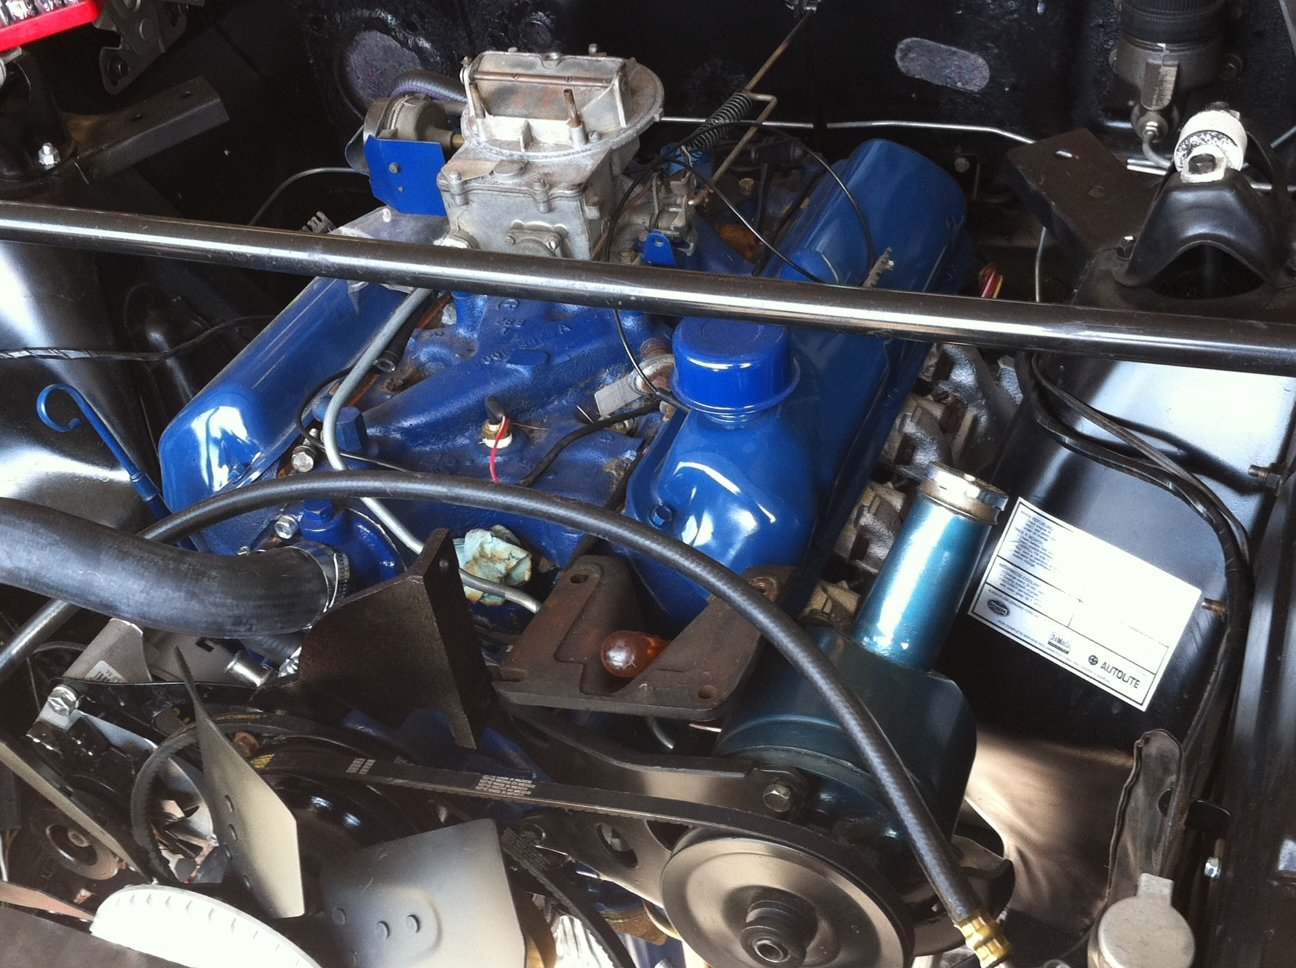 289 engine rebuild - Page 2 - Ford Mustang Forum